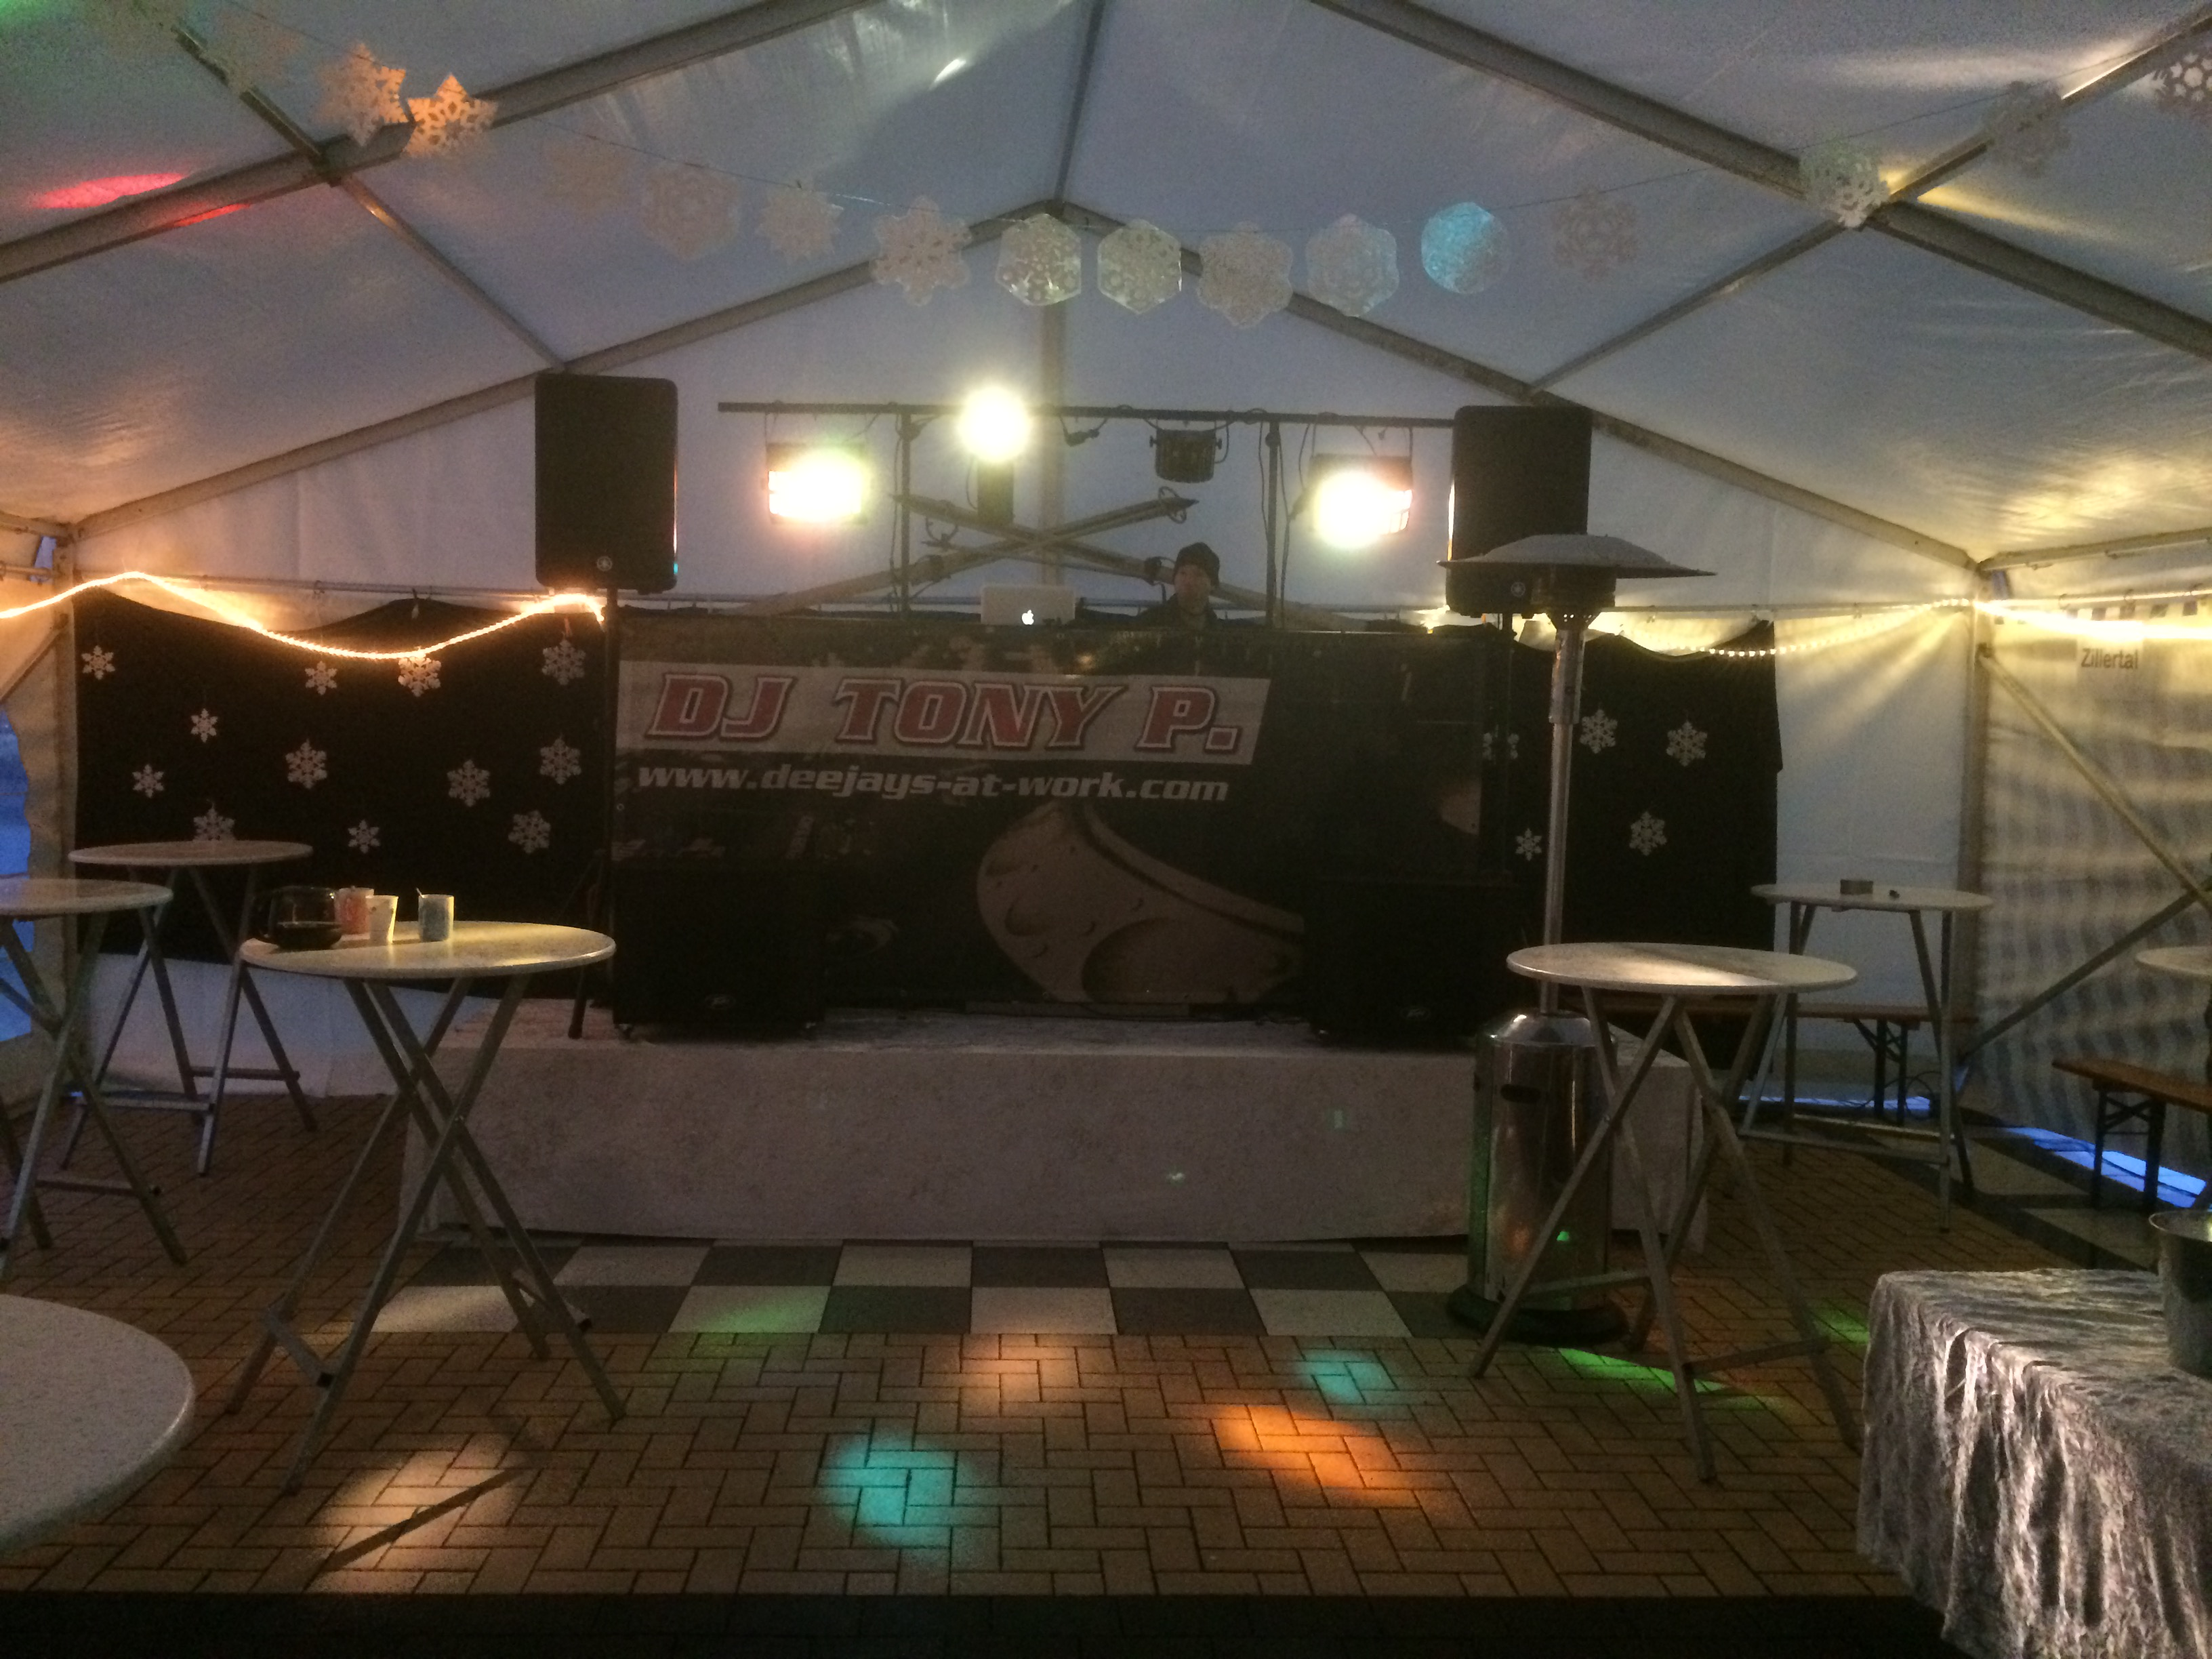 Weihnachtsfeier - Corporate Event - Party | DJ TONY P